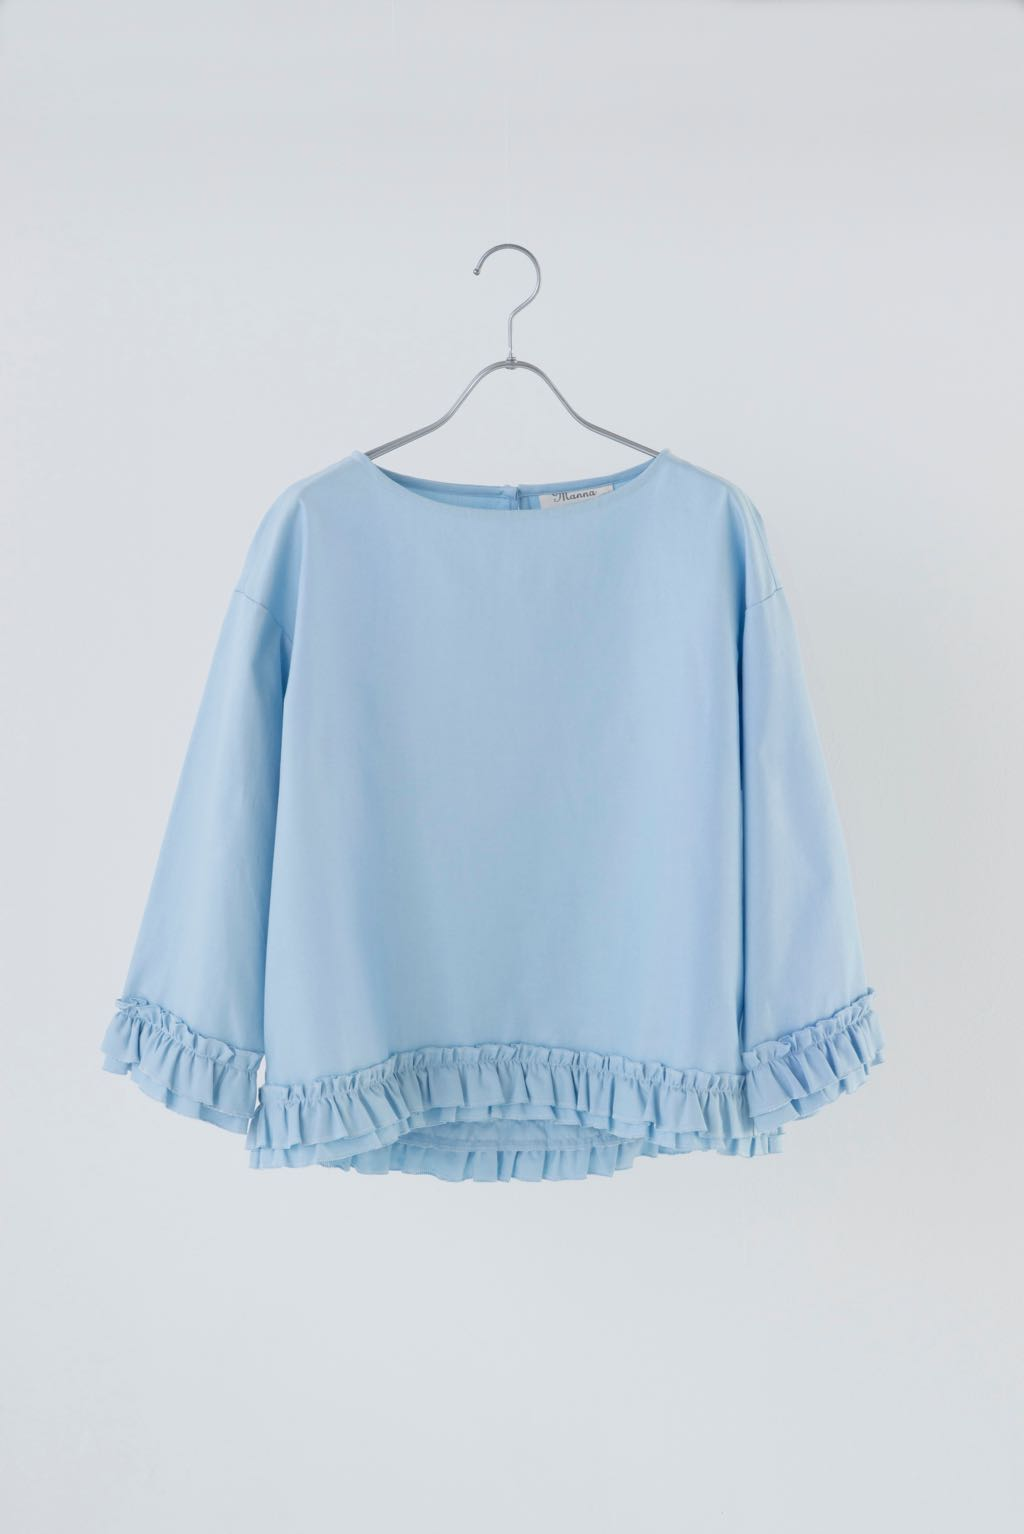 COTTON FRILL BLOUSE 164823 ¥16,000+tax